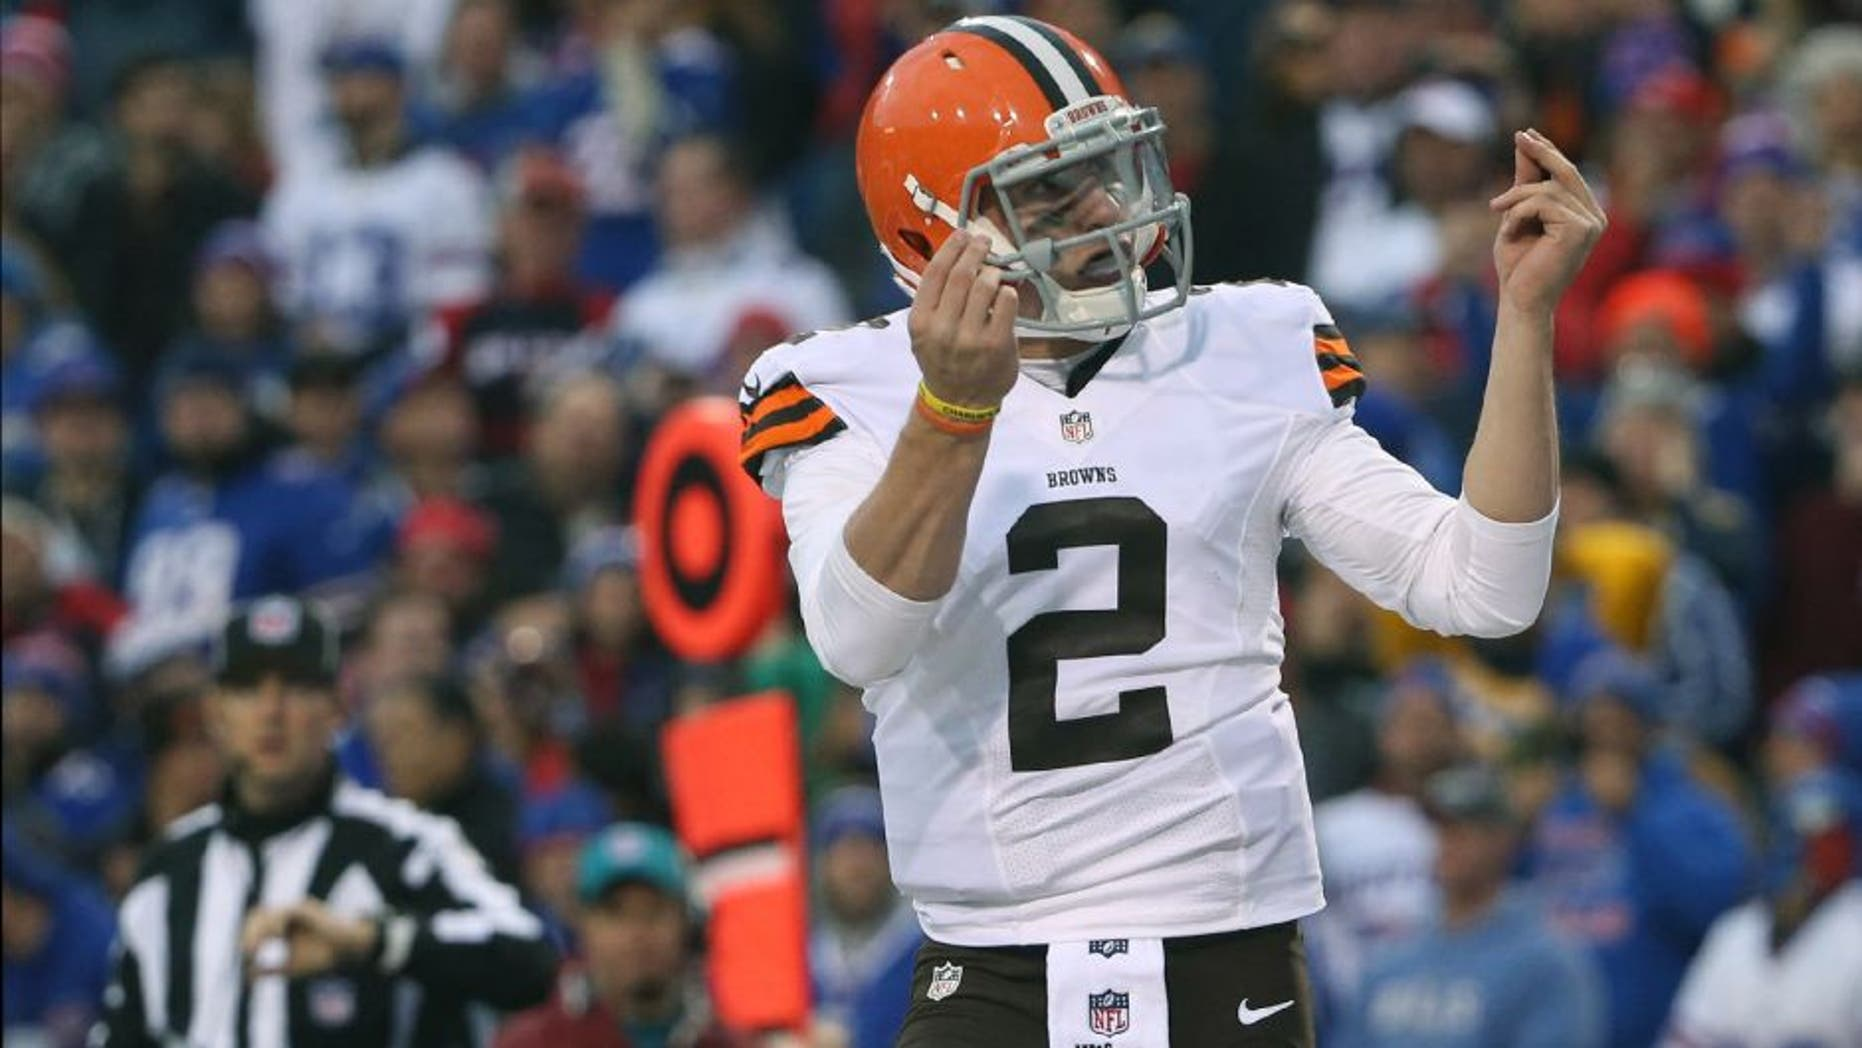 ORCHARD PARK, NY - NOVEMBER 30: Johnny Manziel #2 of the Cleveland Browns celebrates after scoring a touchdown during NFL game action against the Buffalo Bills at Ralph Wilson Stadium on November 30, 2014 in Orchard Park, New York. (Photo by Tom Szczerbowski/Getty Images)